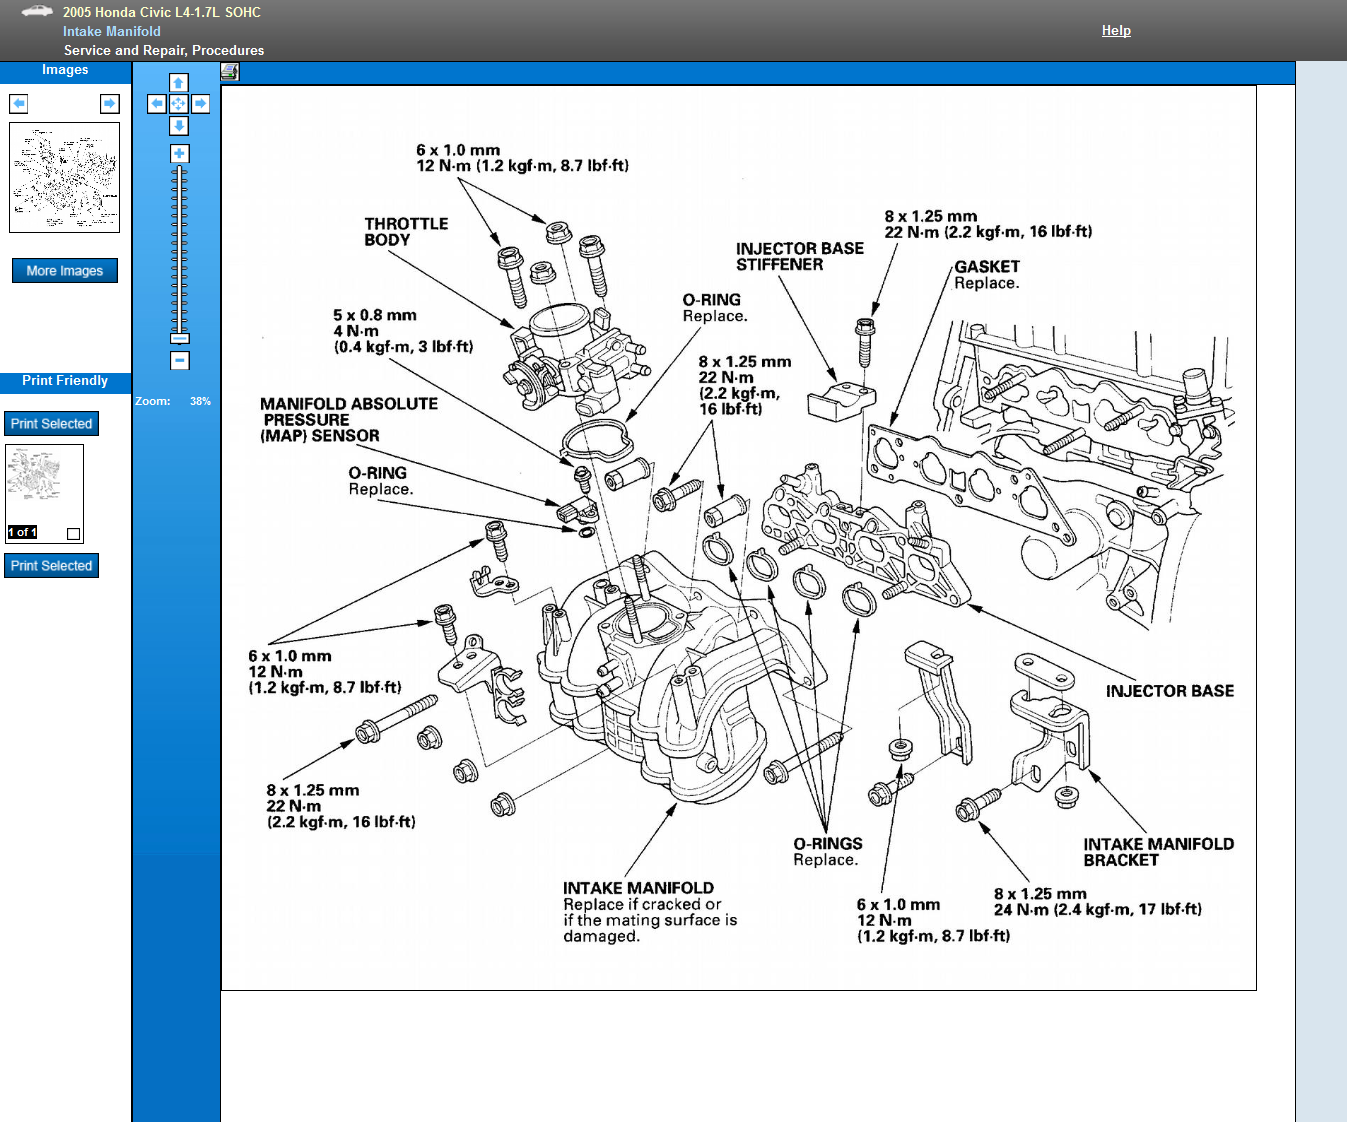 Honda techs. on a 2005 civic 1.7 engine whats procedure to r&r the